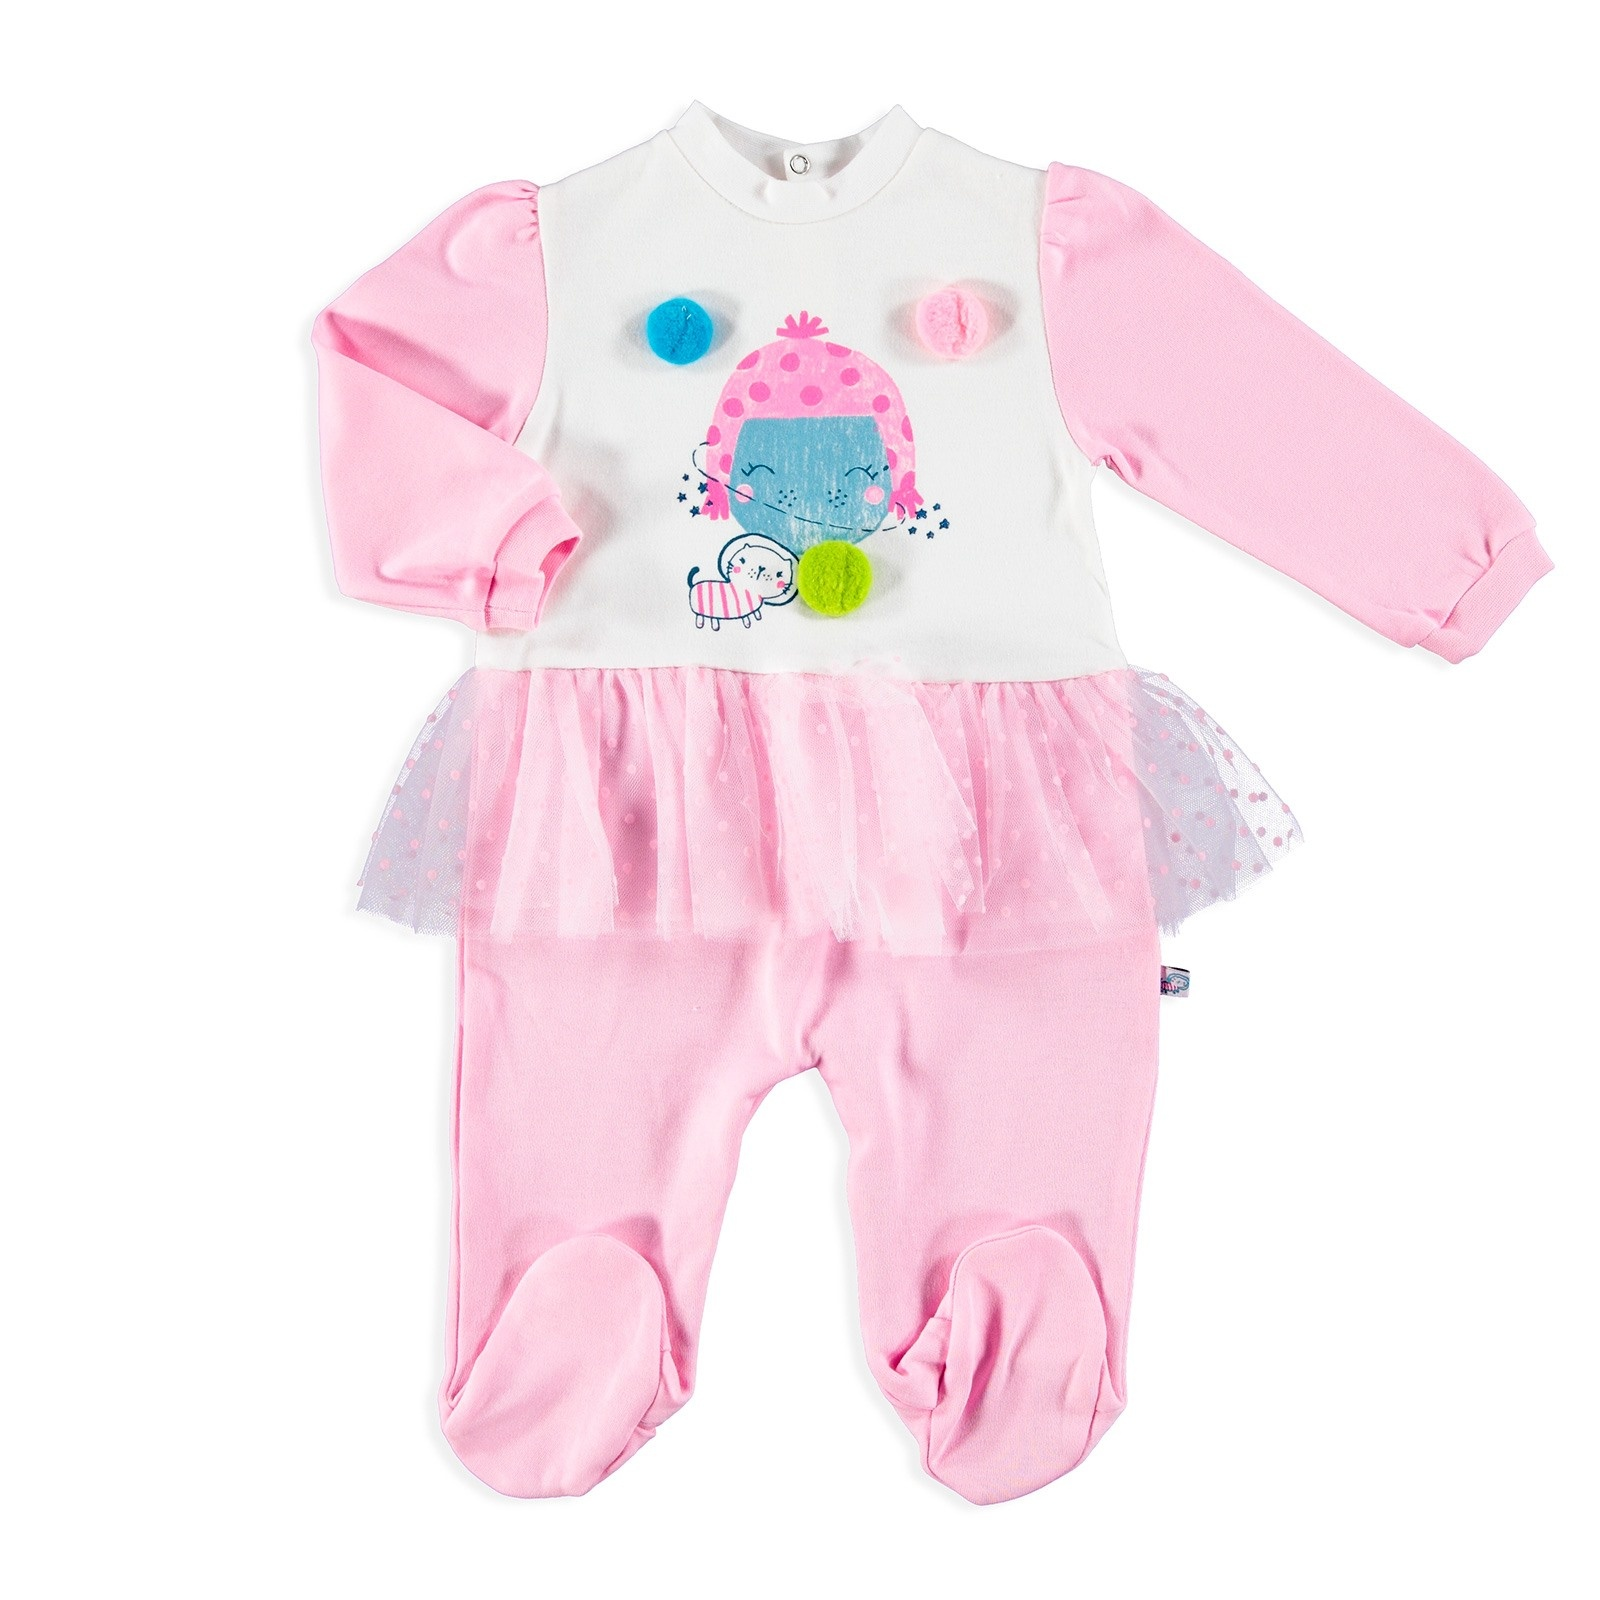 Ebebek Mymio Bow Tie Interlock Ruffle Detailed Footed Baby Romper